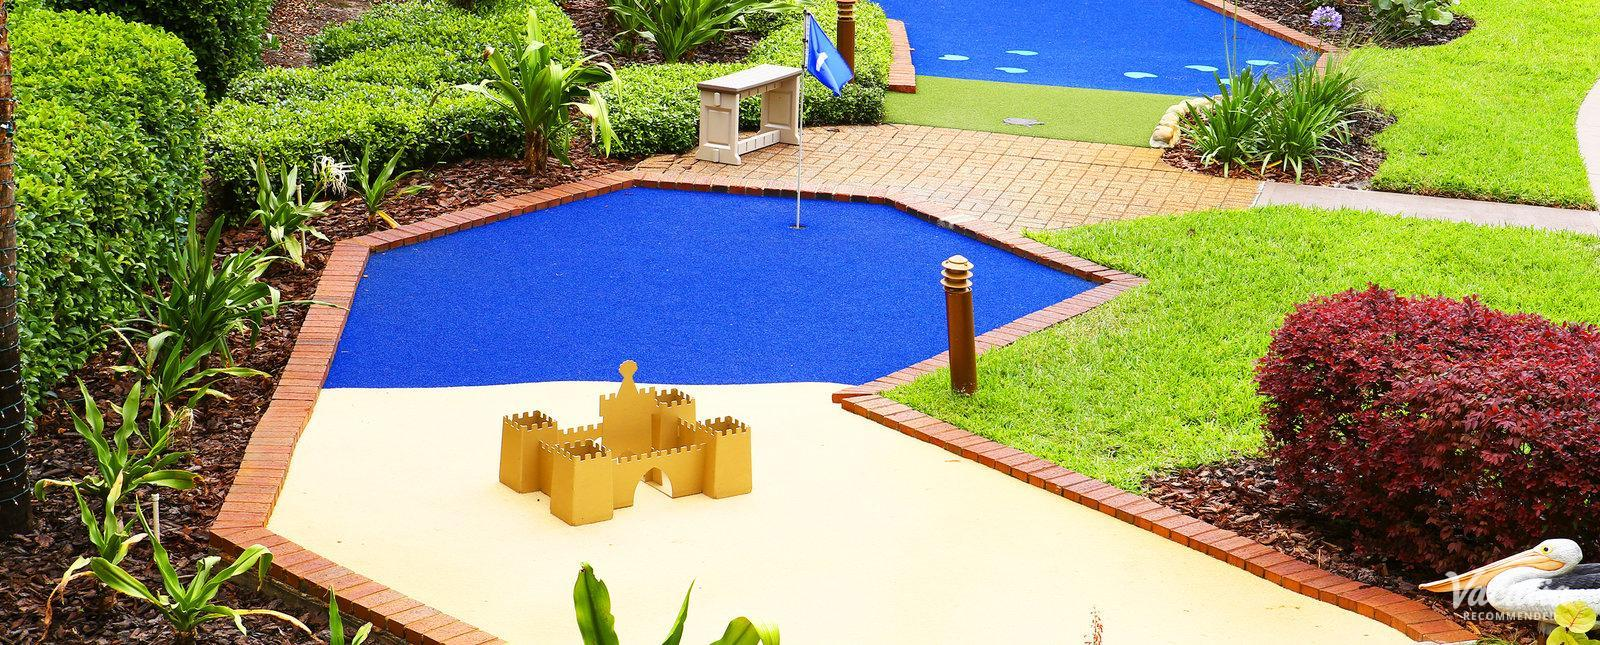 Westgate Blue Tree minigolf for families